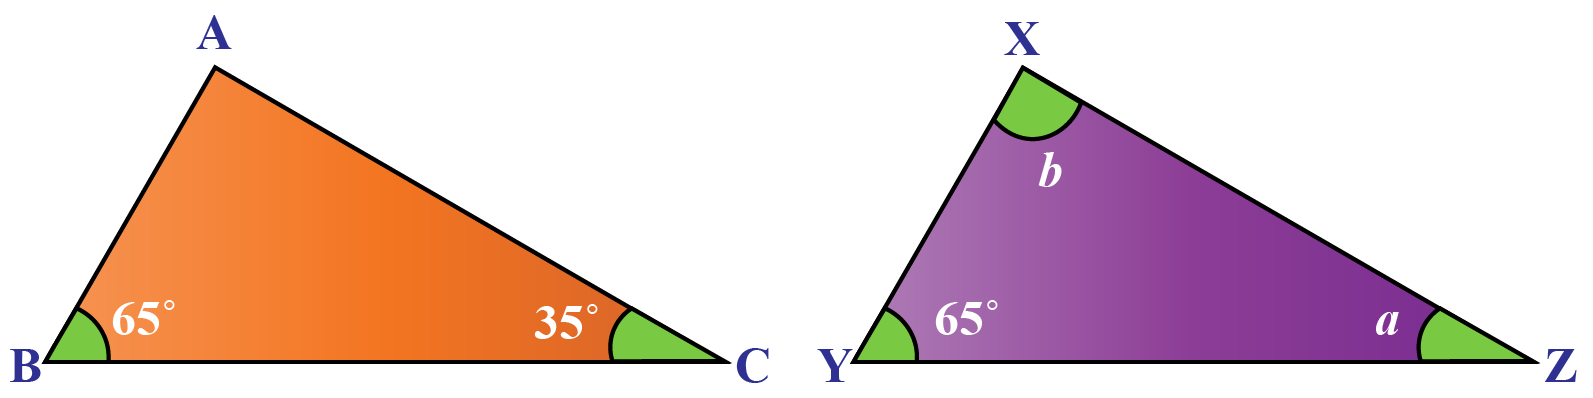 congruence in triangle example